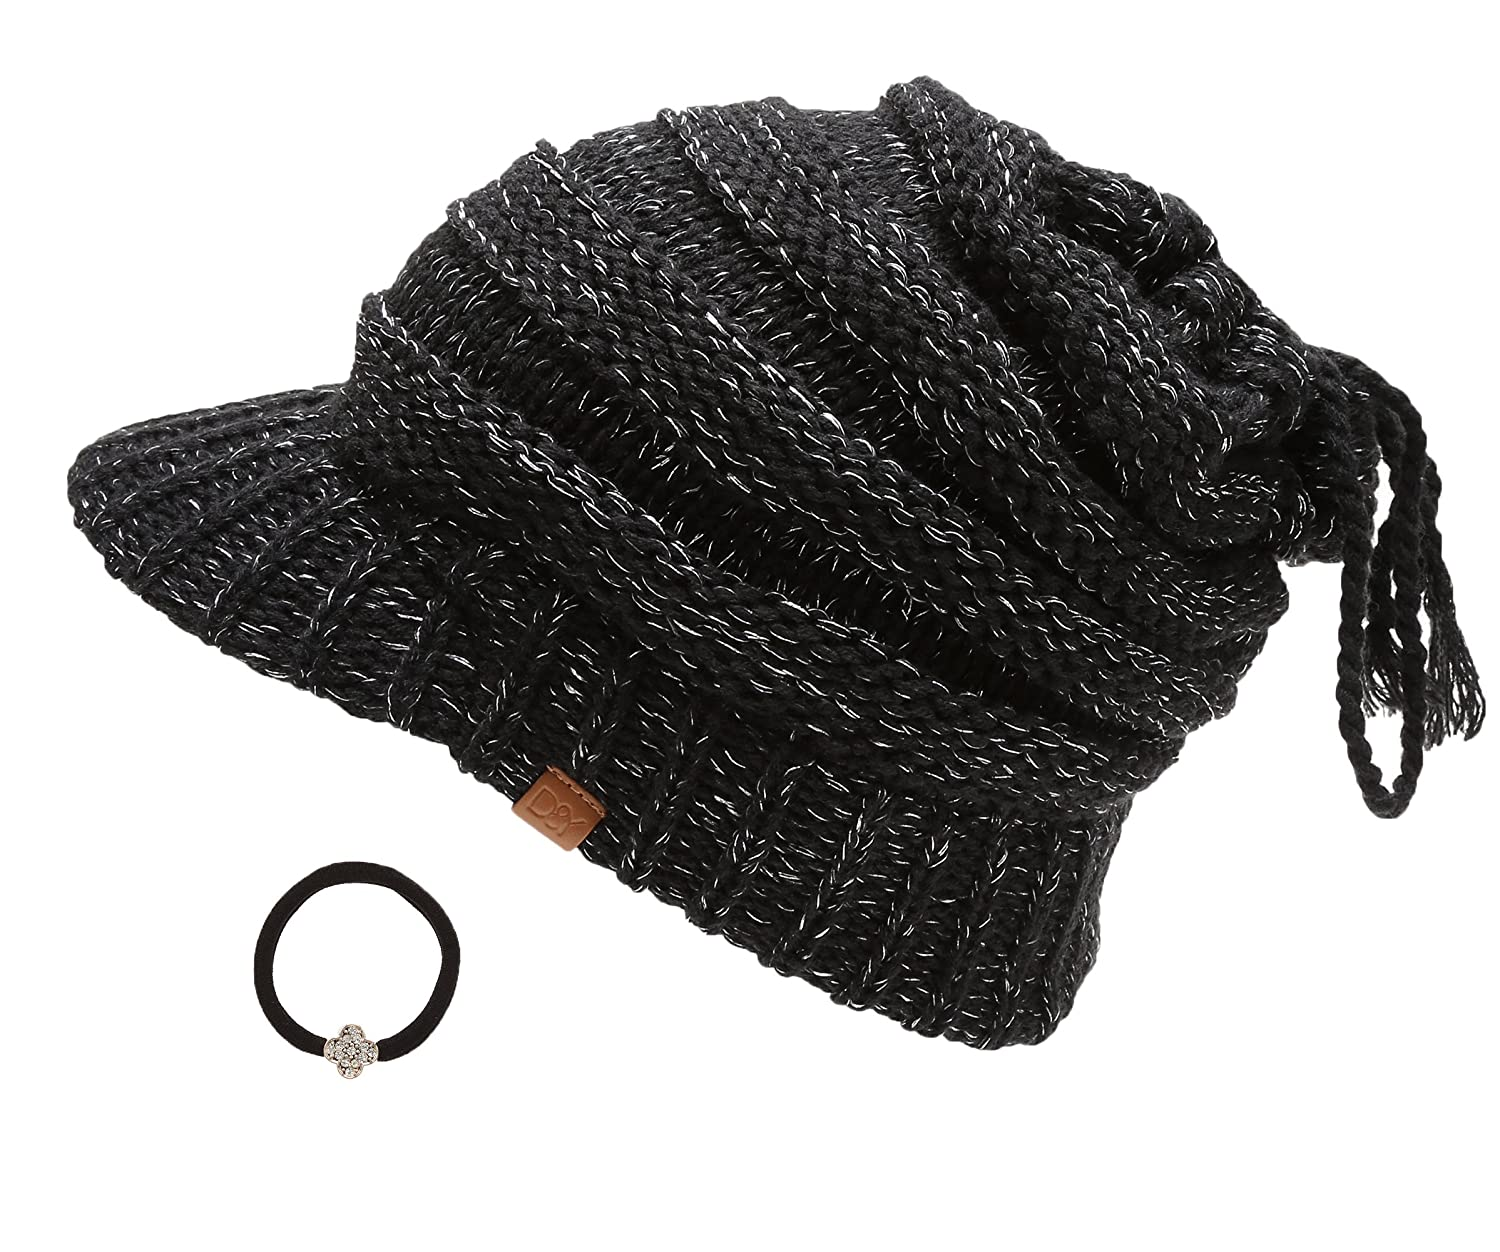 252bbb952aa D Y Women s Beanie Tail Cable Knit Visor Ponytail Beanie Hat With Hair Tie.(Black)  at Amazon Women s Clothing store